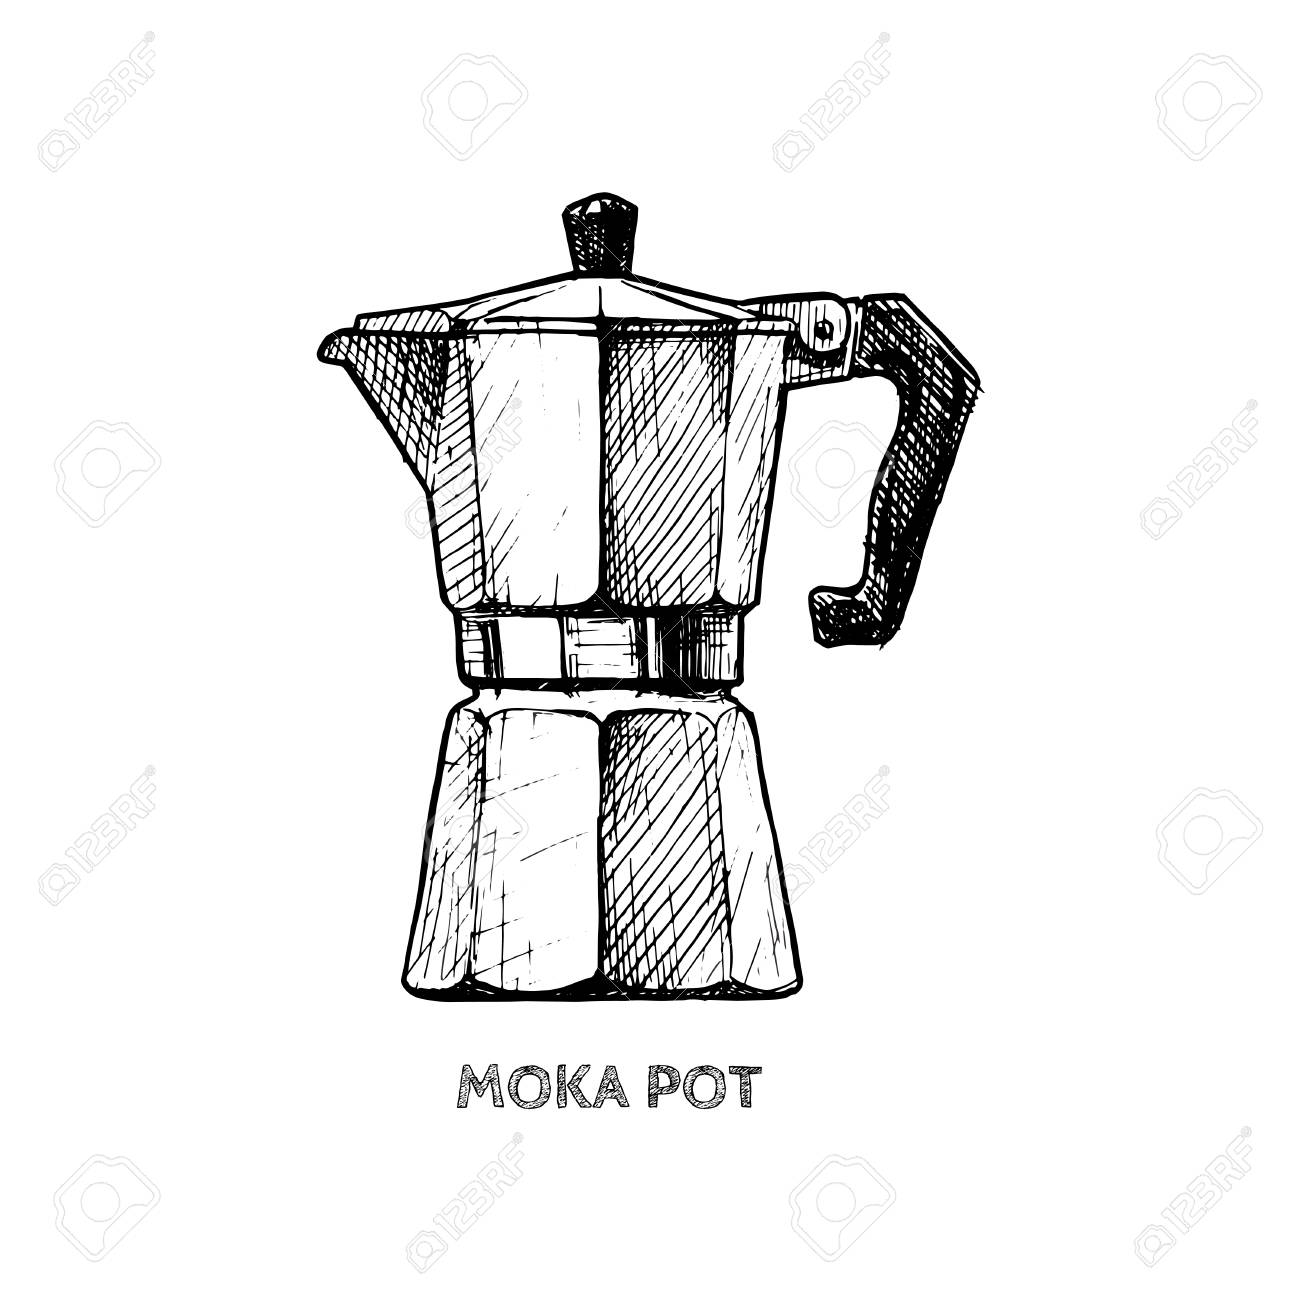 Vector Hand Drawn Illustration Of Moka Pot In Vintage Engraved